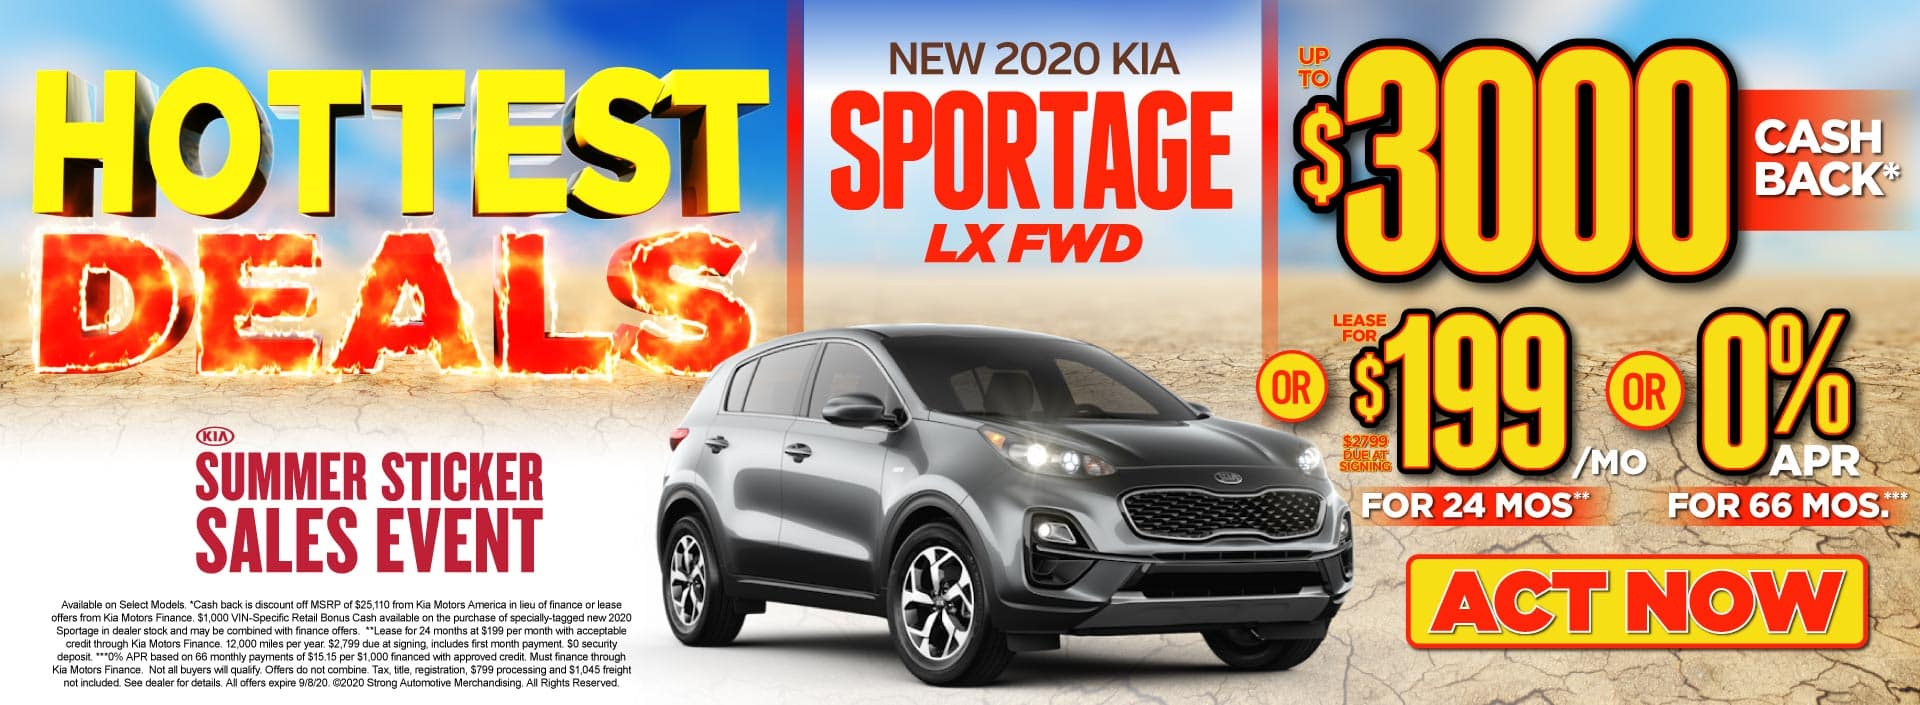 New 2020 Kia Sportage up to $3000 Off MSRP - ACT NOW